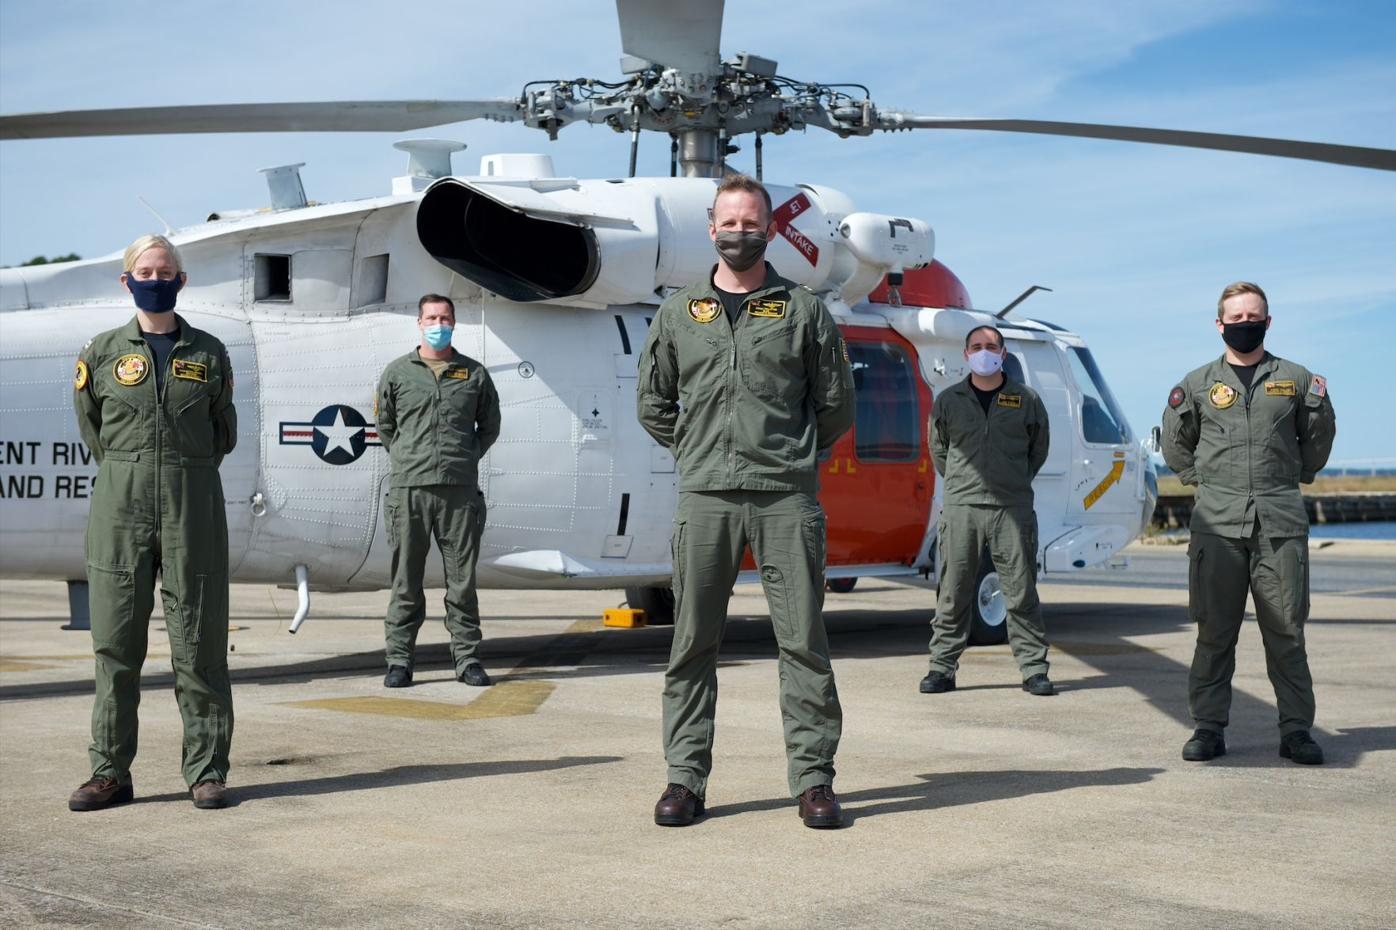 VX-20, Pax SAR teams assist in rescue of downed Hawkeye crew